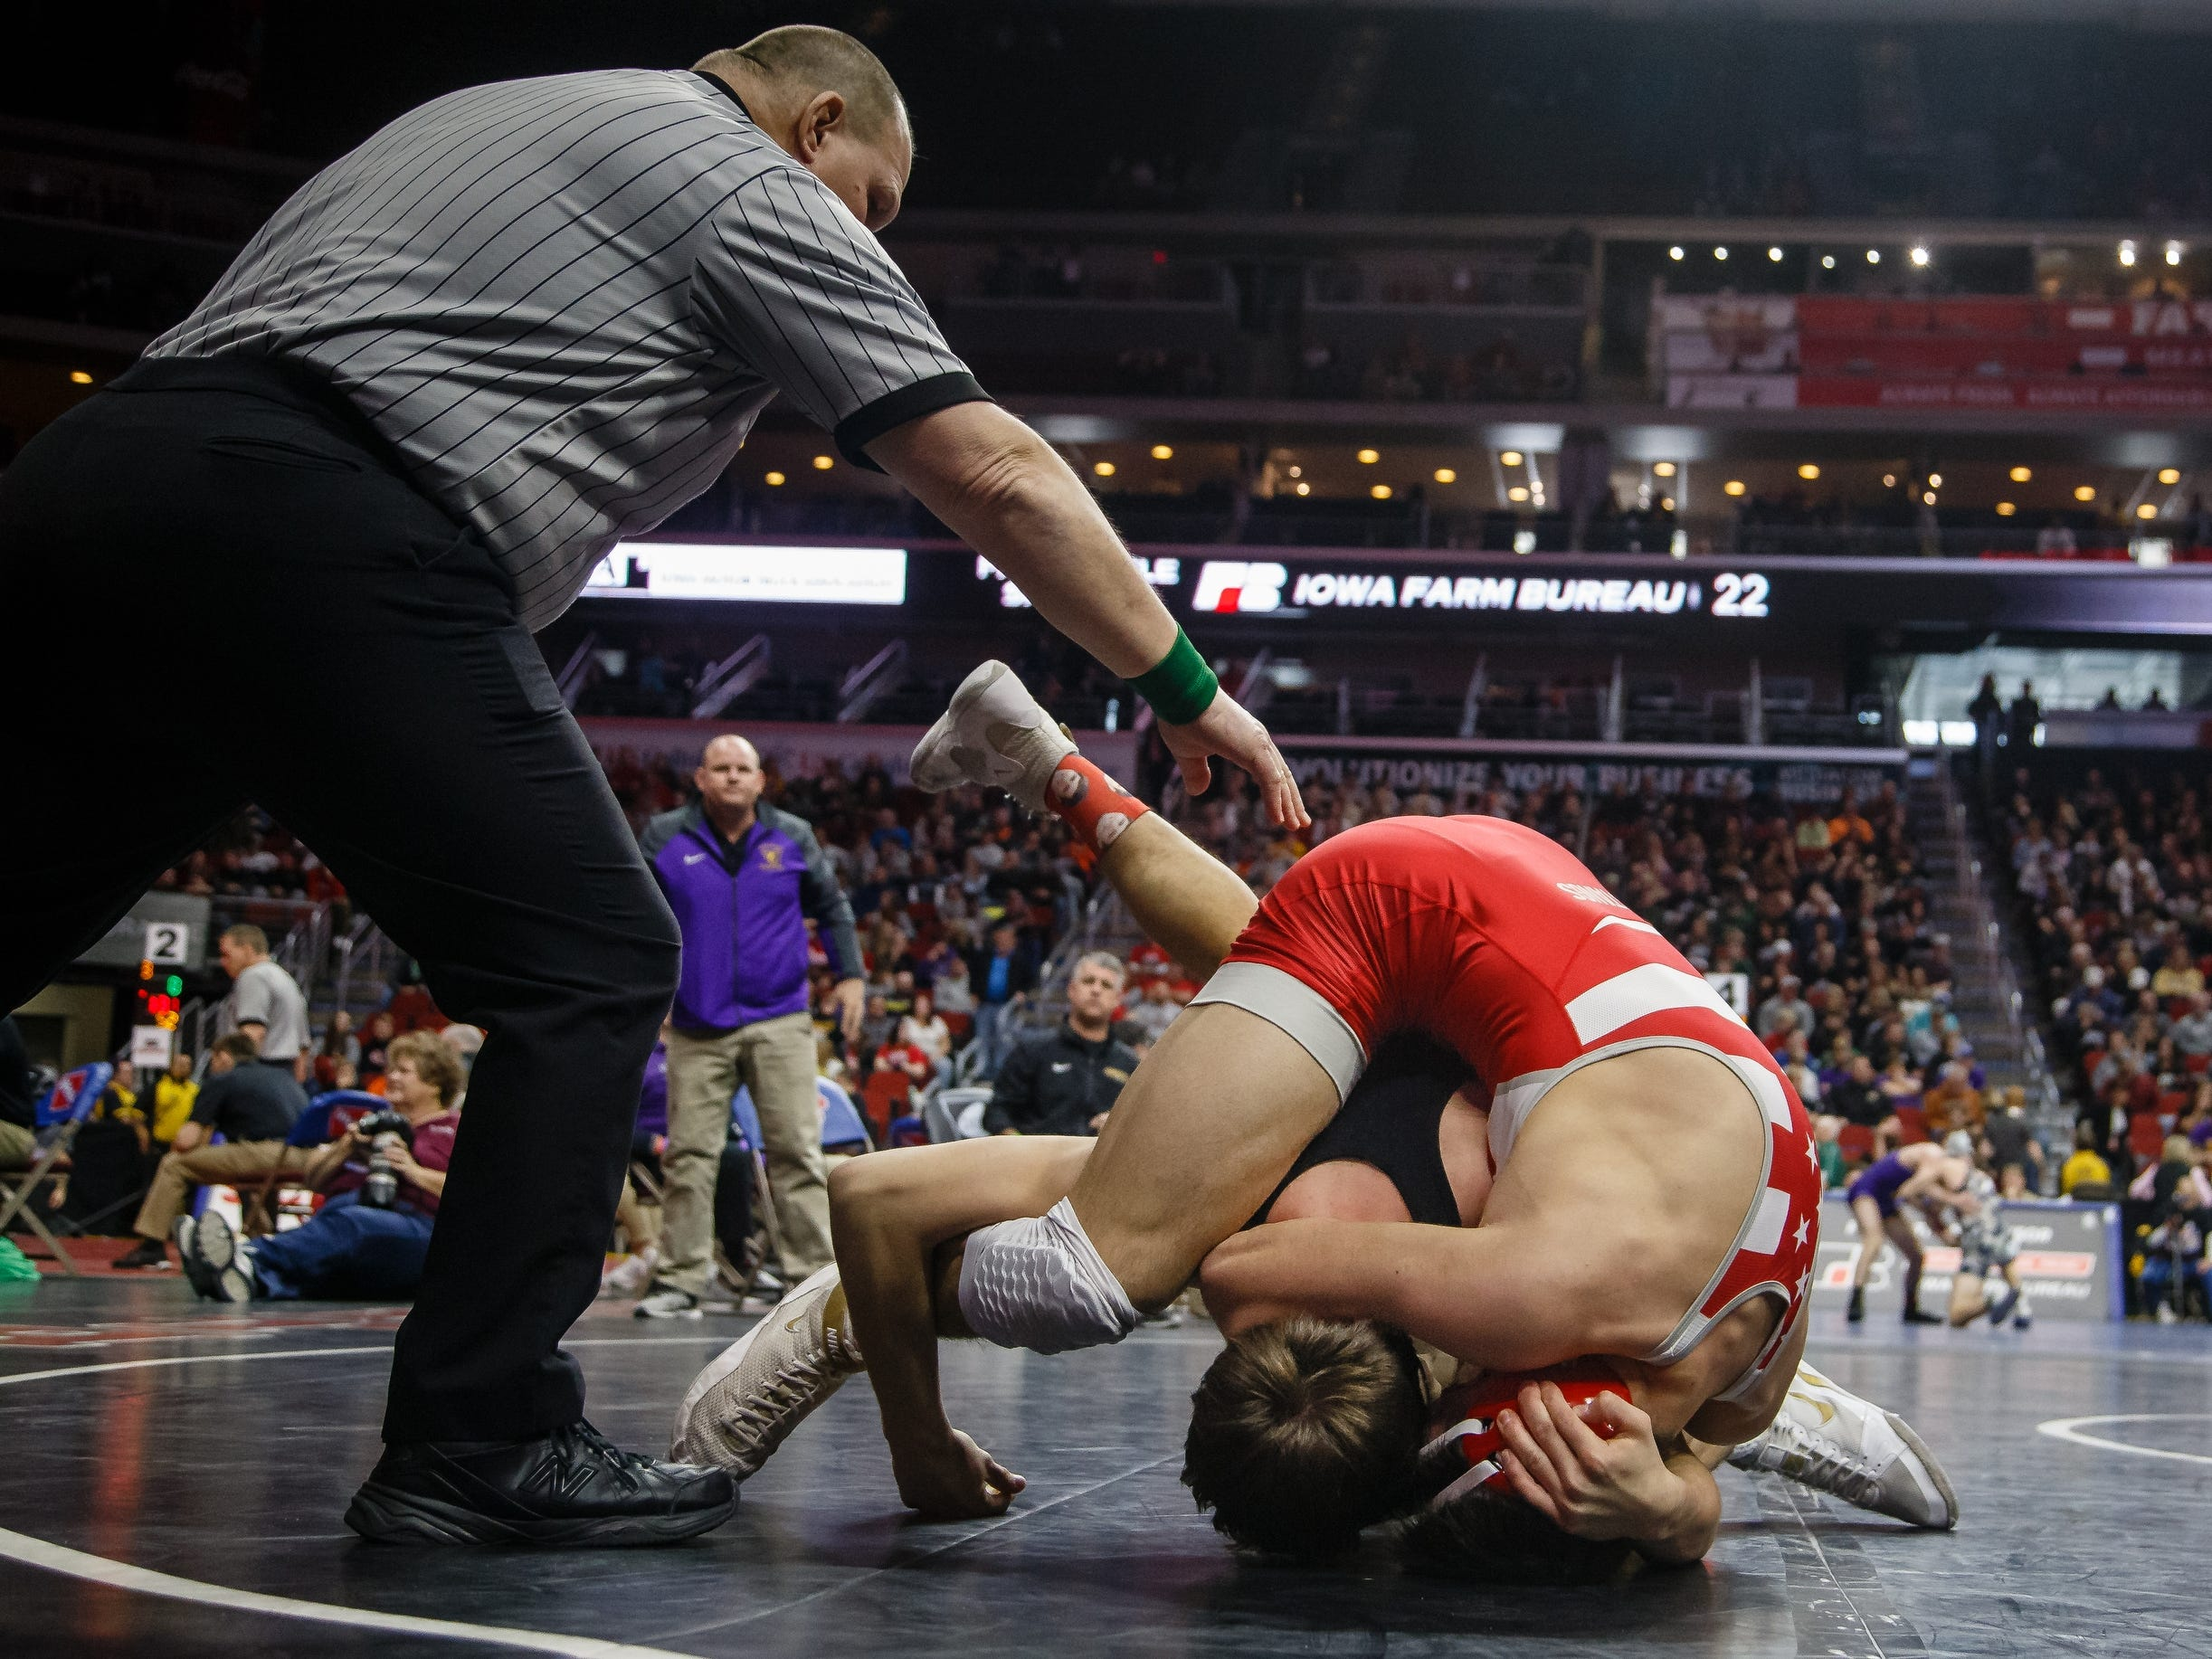 Cade Moss of Johnston wrestles Bain Broderick of Dallas Center- Grimes during their 3A 152 lb match at the state wrestling tournament on Thursday, Feb. 14, 2019 in Des Moines.